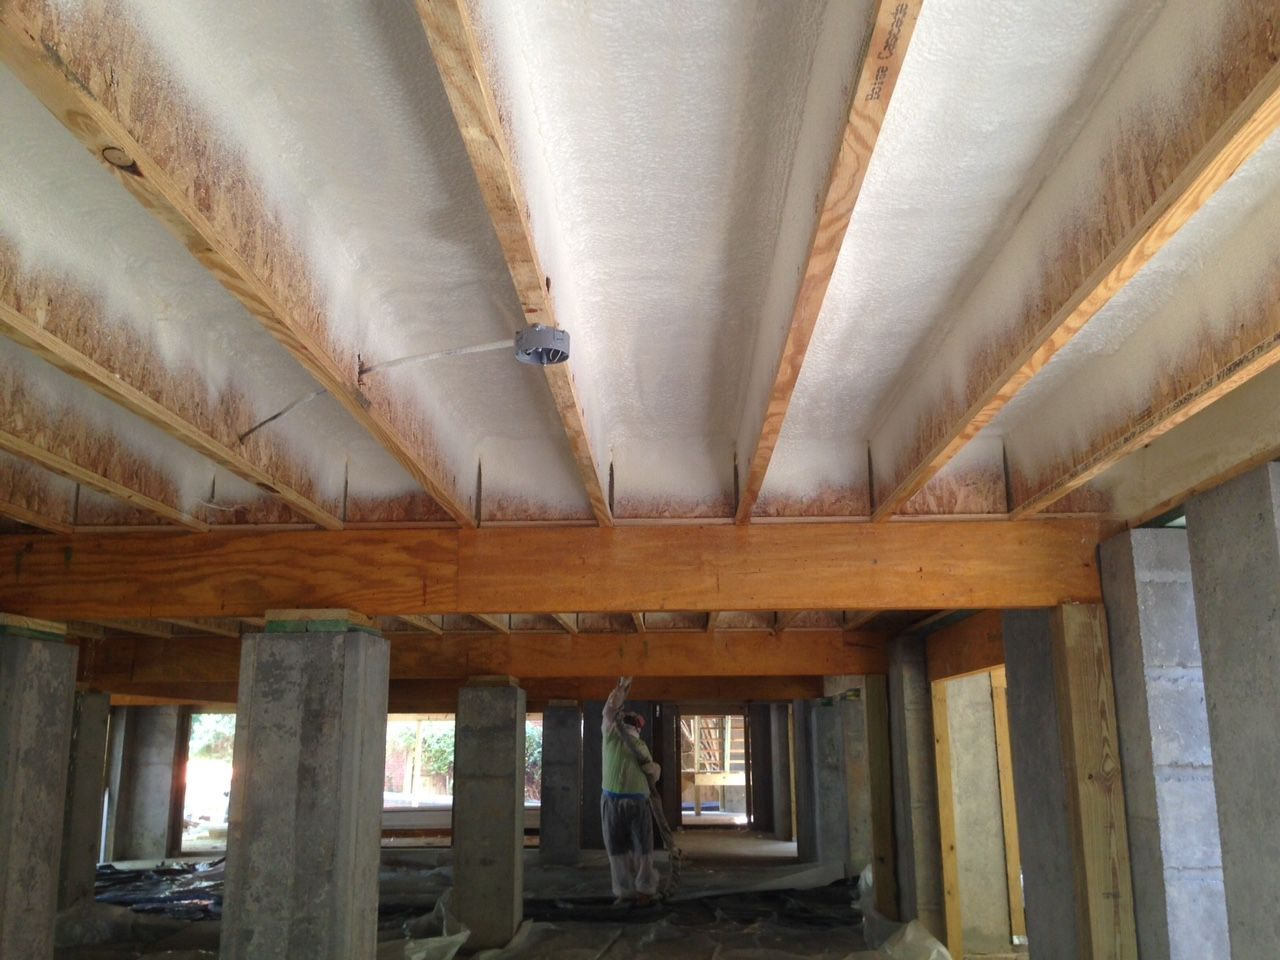 Spray Insulation For Basement Ceiling Basements Are An Significant Part Most Houses They Are Genera Spray Insulation Basement Ceiling Waterproofing Basement